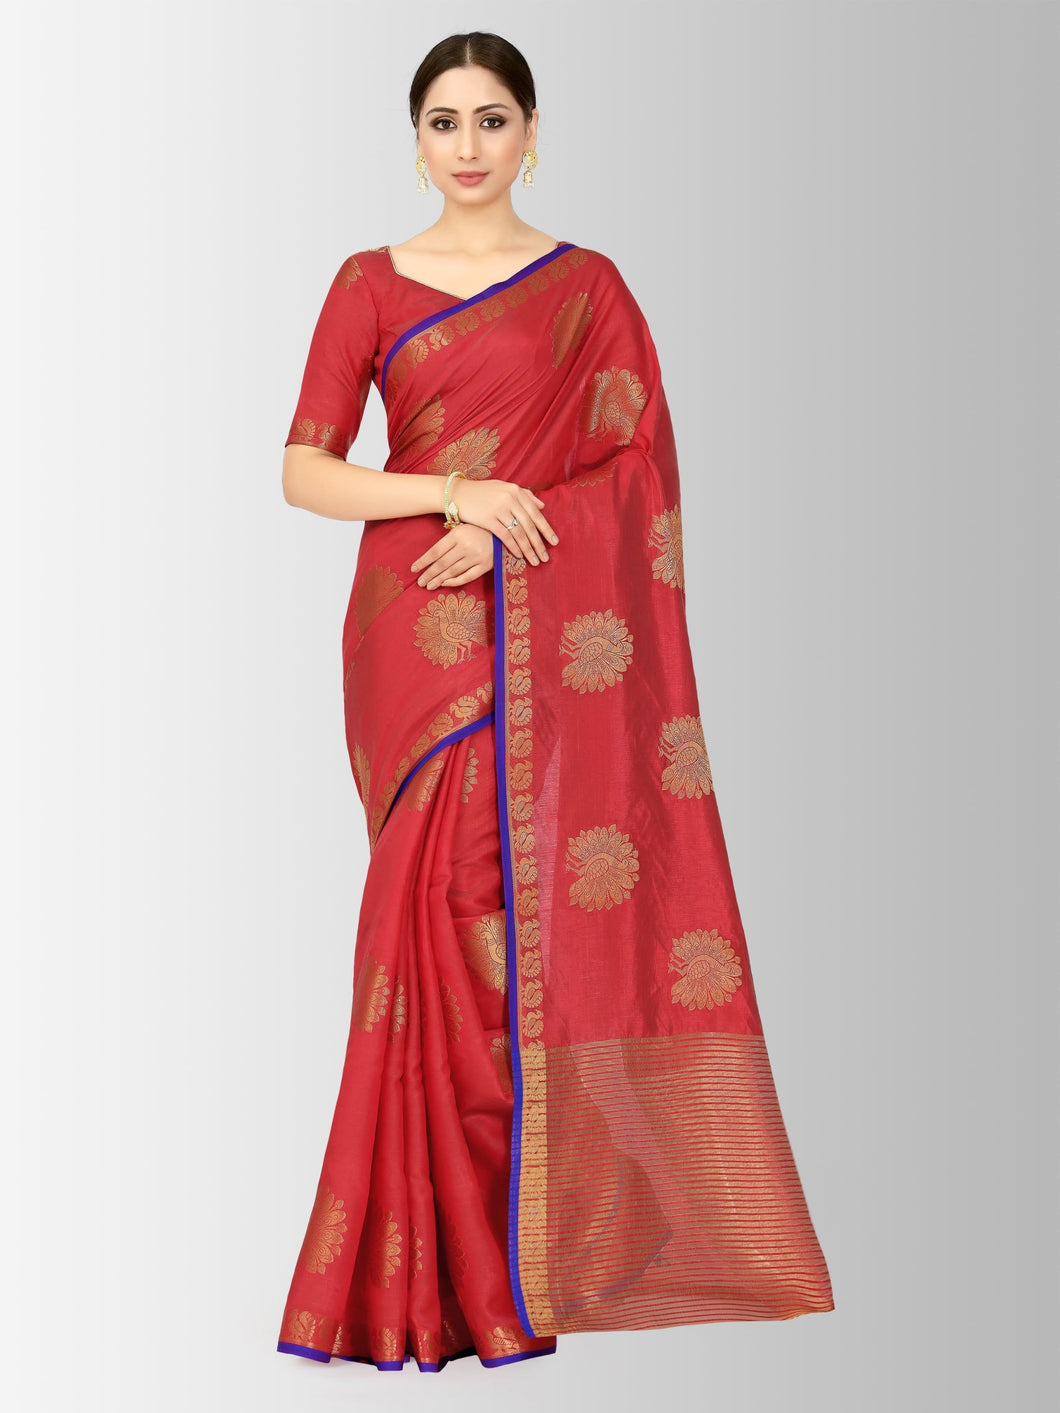 Mimosa kanjivaram style tussar silk saree color - red